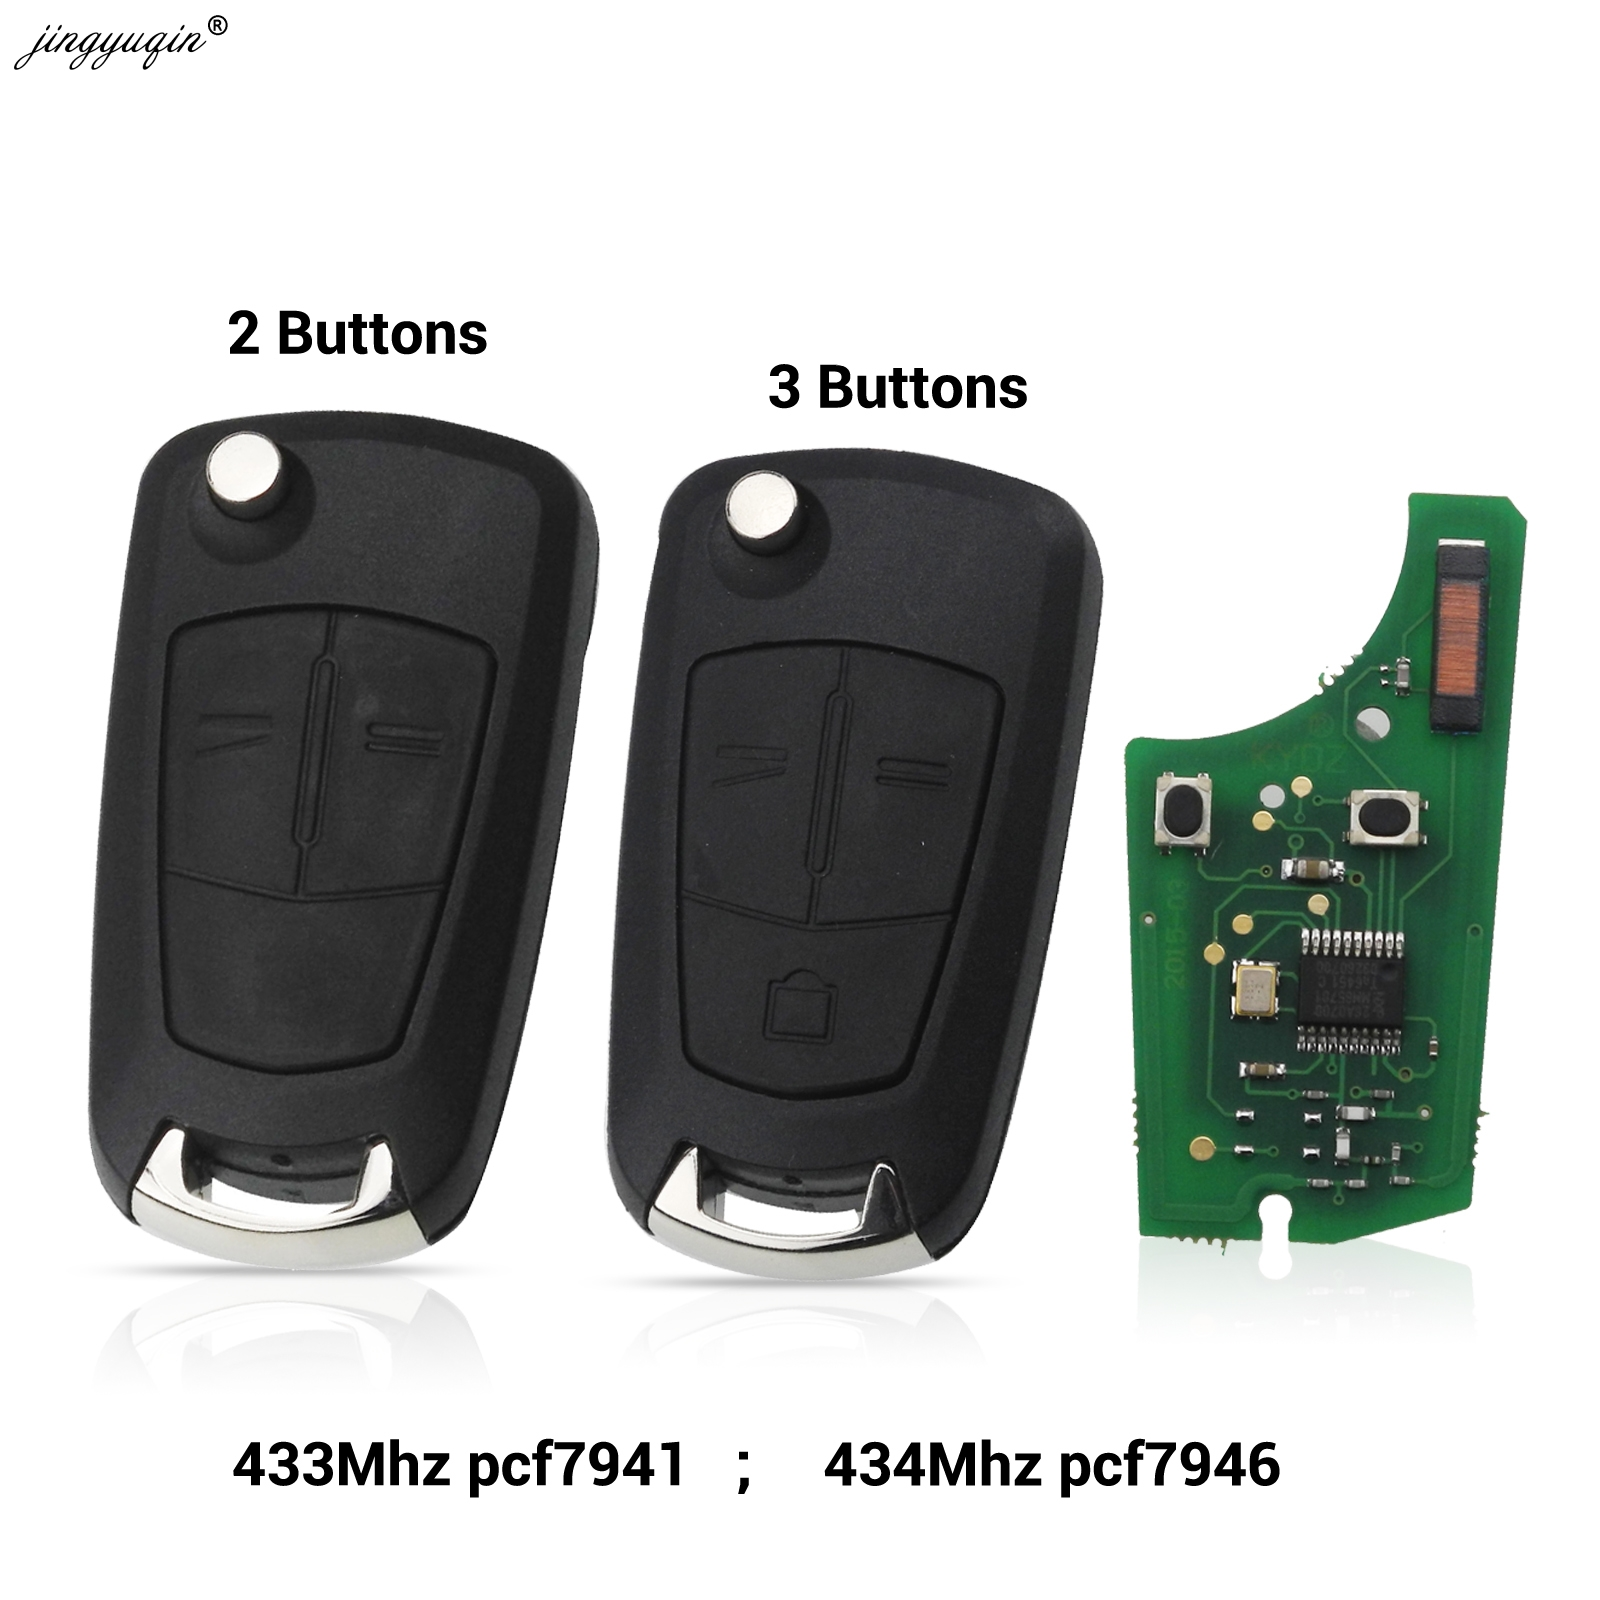 Jingyuqin Auto Remote PCF7941 Sleutel Pak Voor Opel/Vauxhall Astra H 2004-2009, zafira B 2005-2013 PCF7946 Voor Vectra C 2002-2008